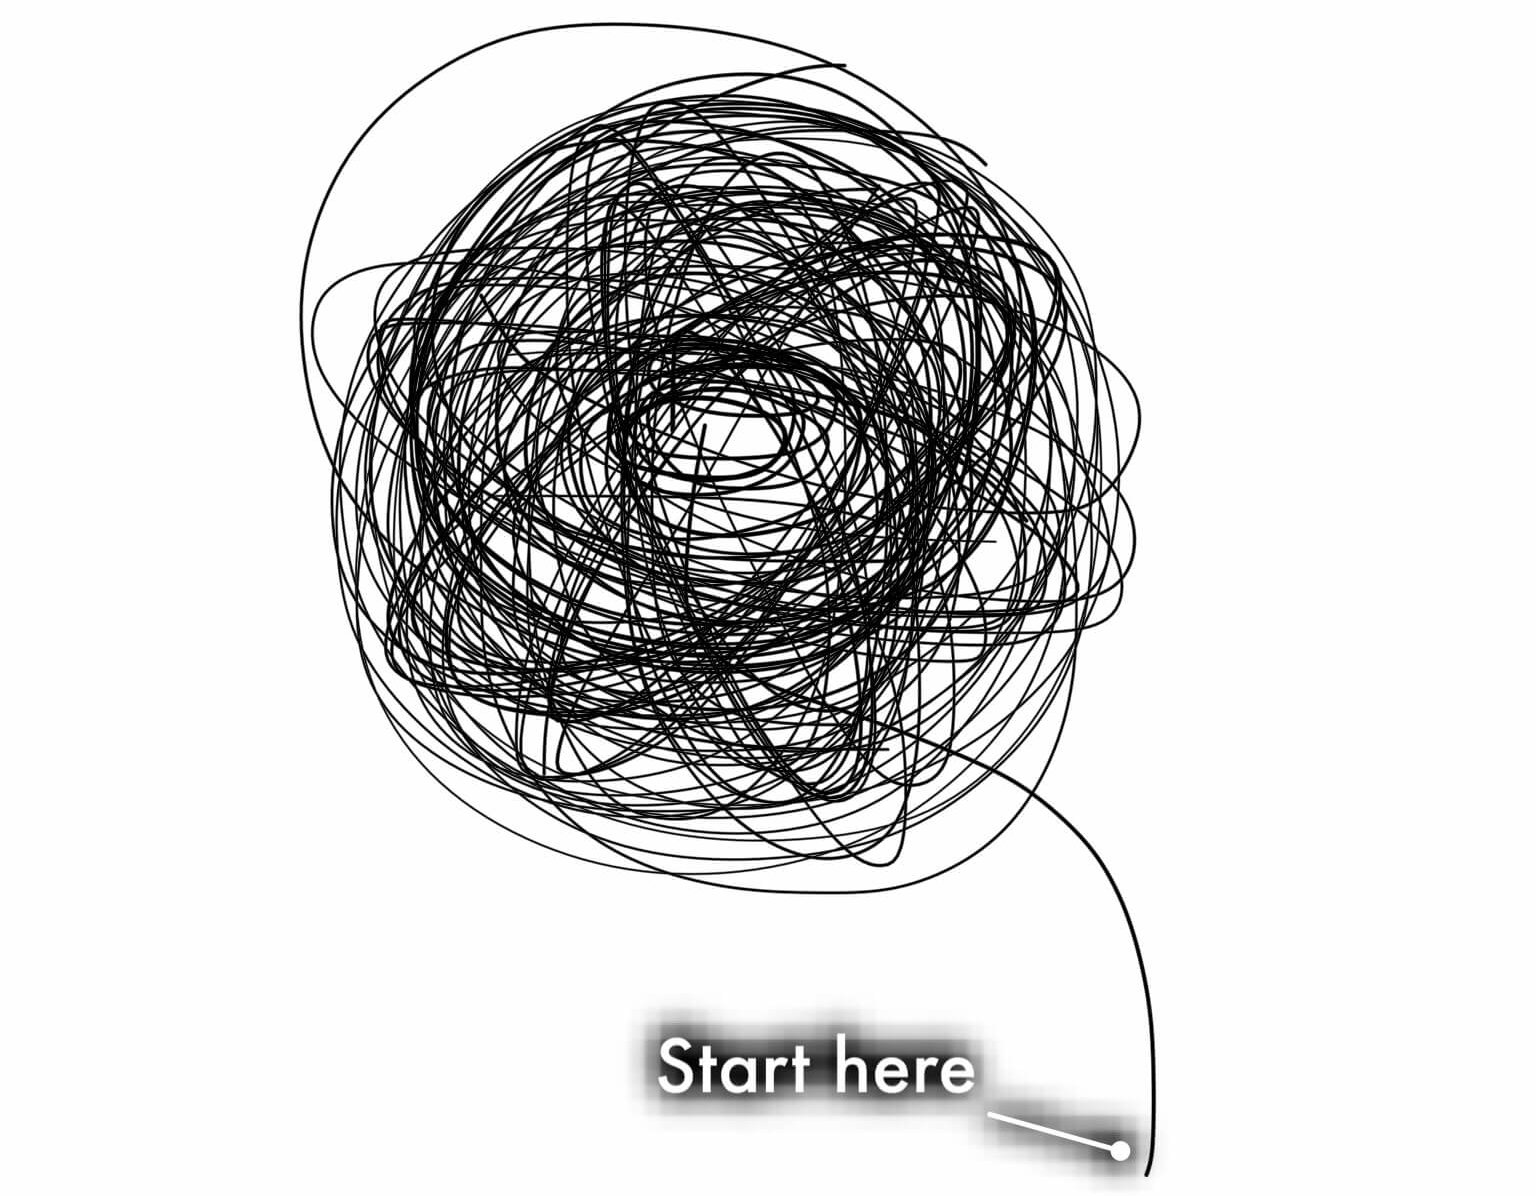 """A ball of yarn showing a loose thread, captioned """"Start here."""""""